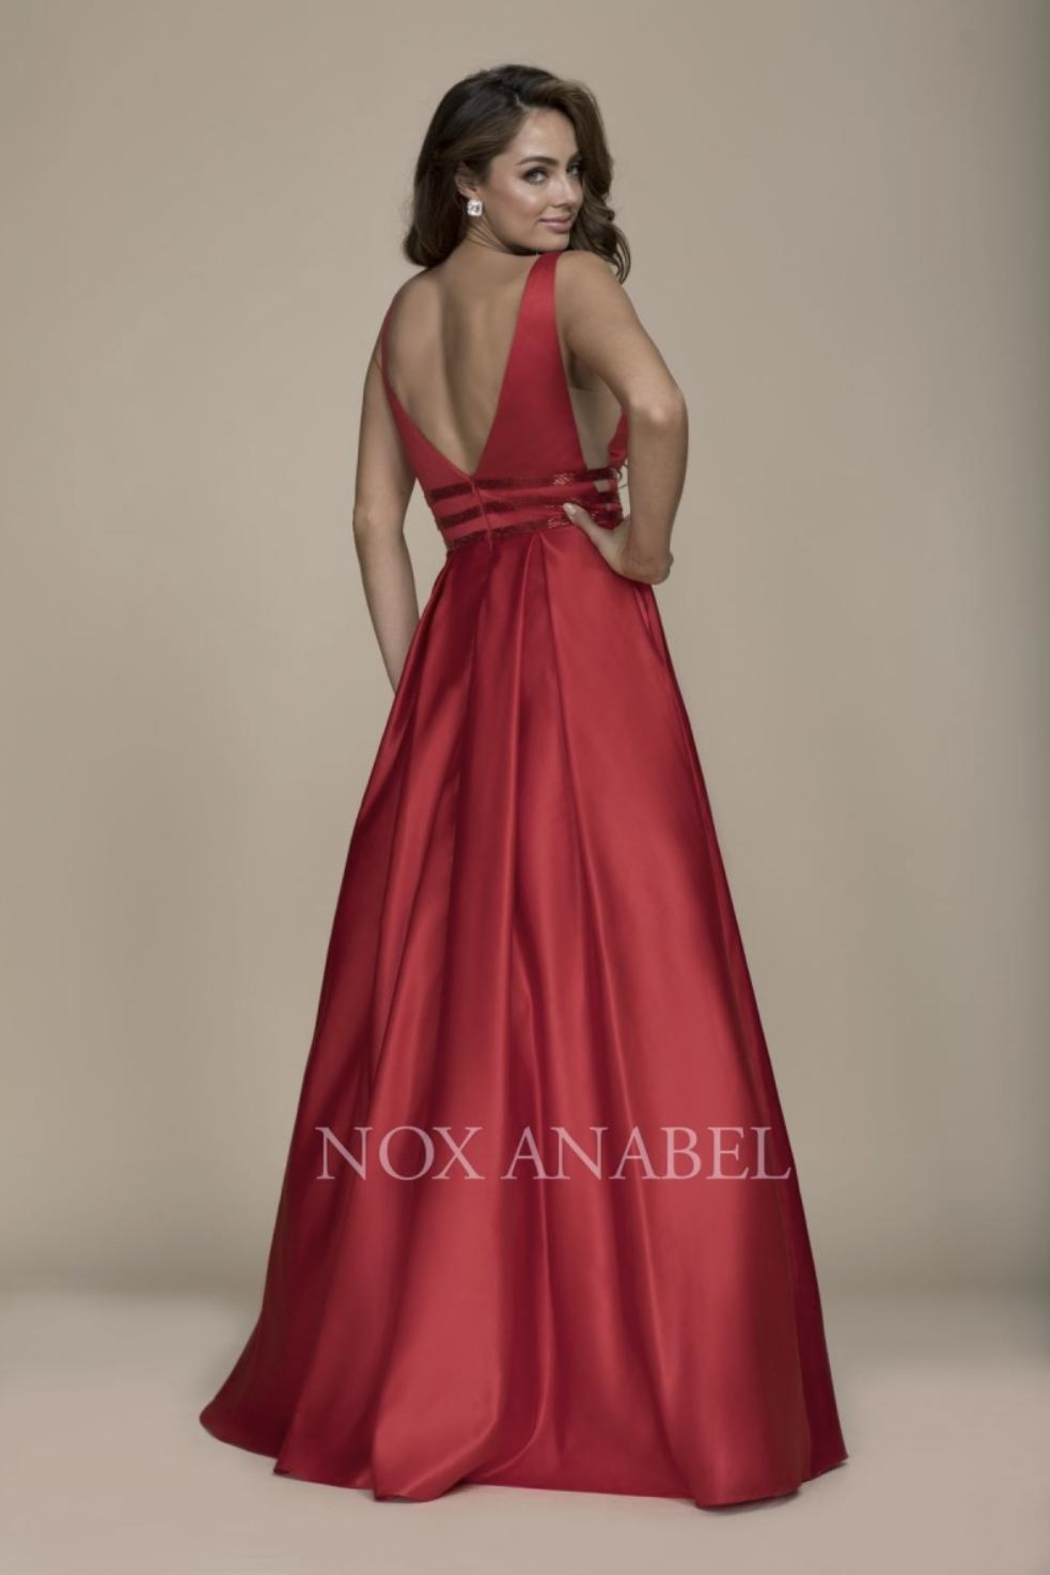 NOX A N A B E L Red Plunging-Back Formal-Dress - Front Full Image